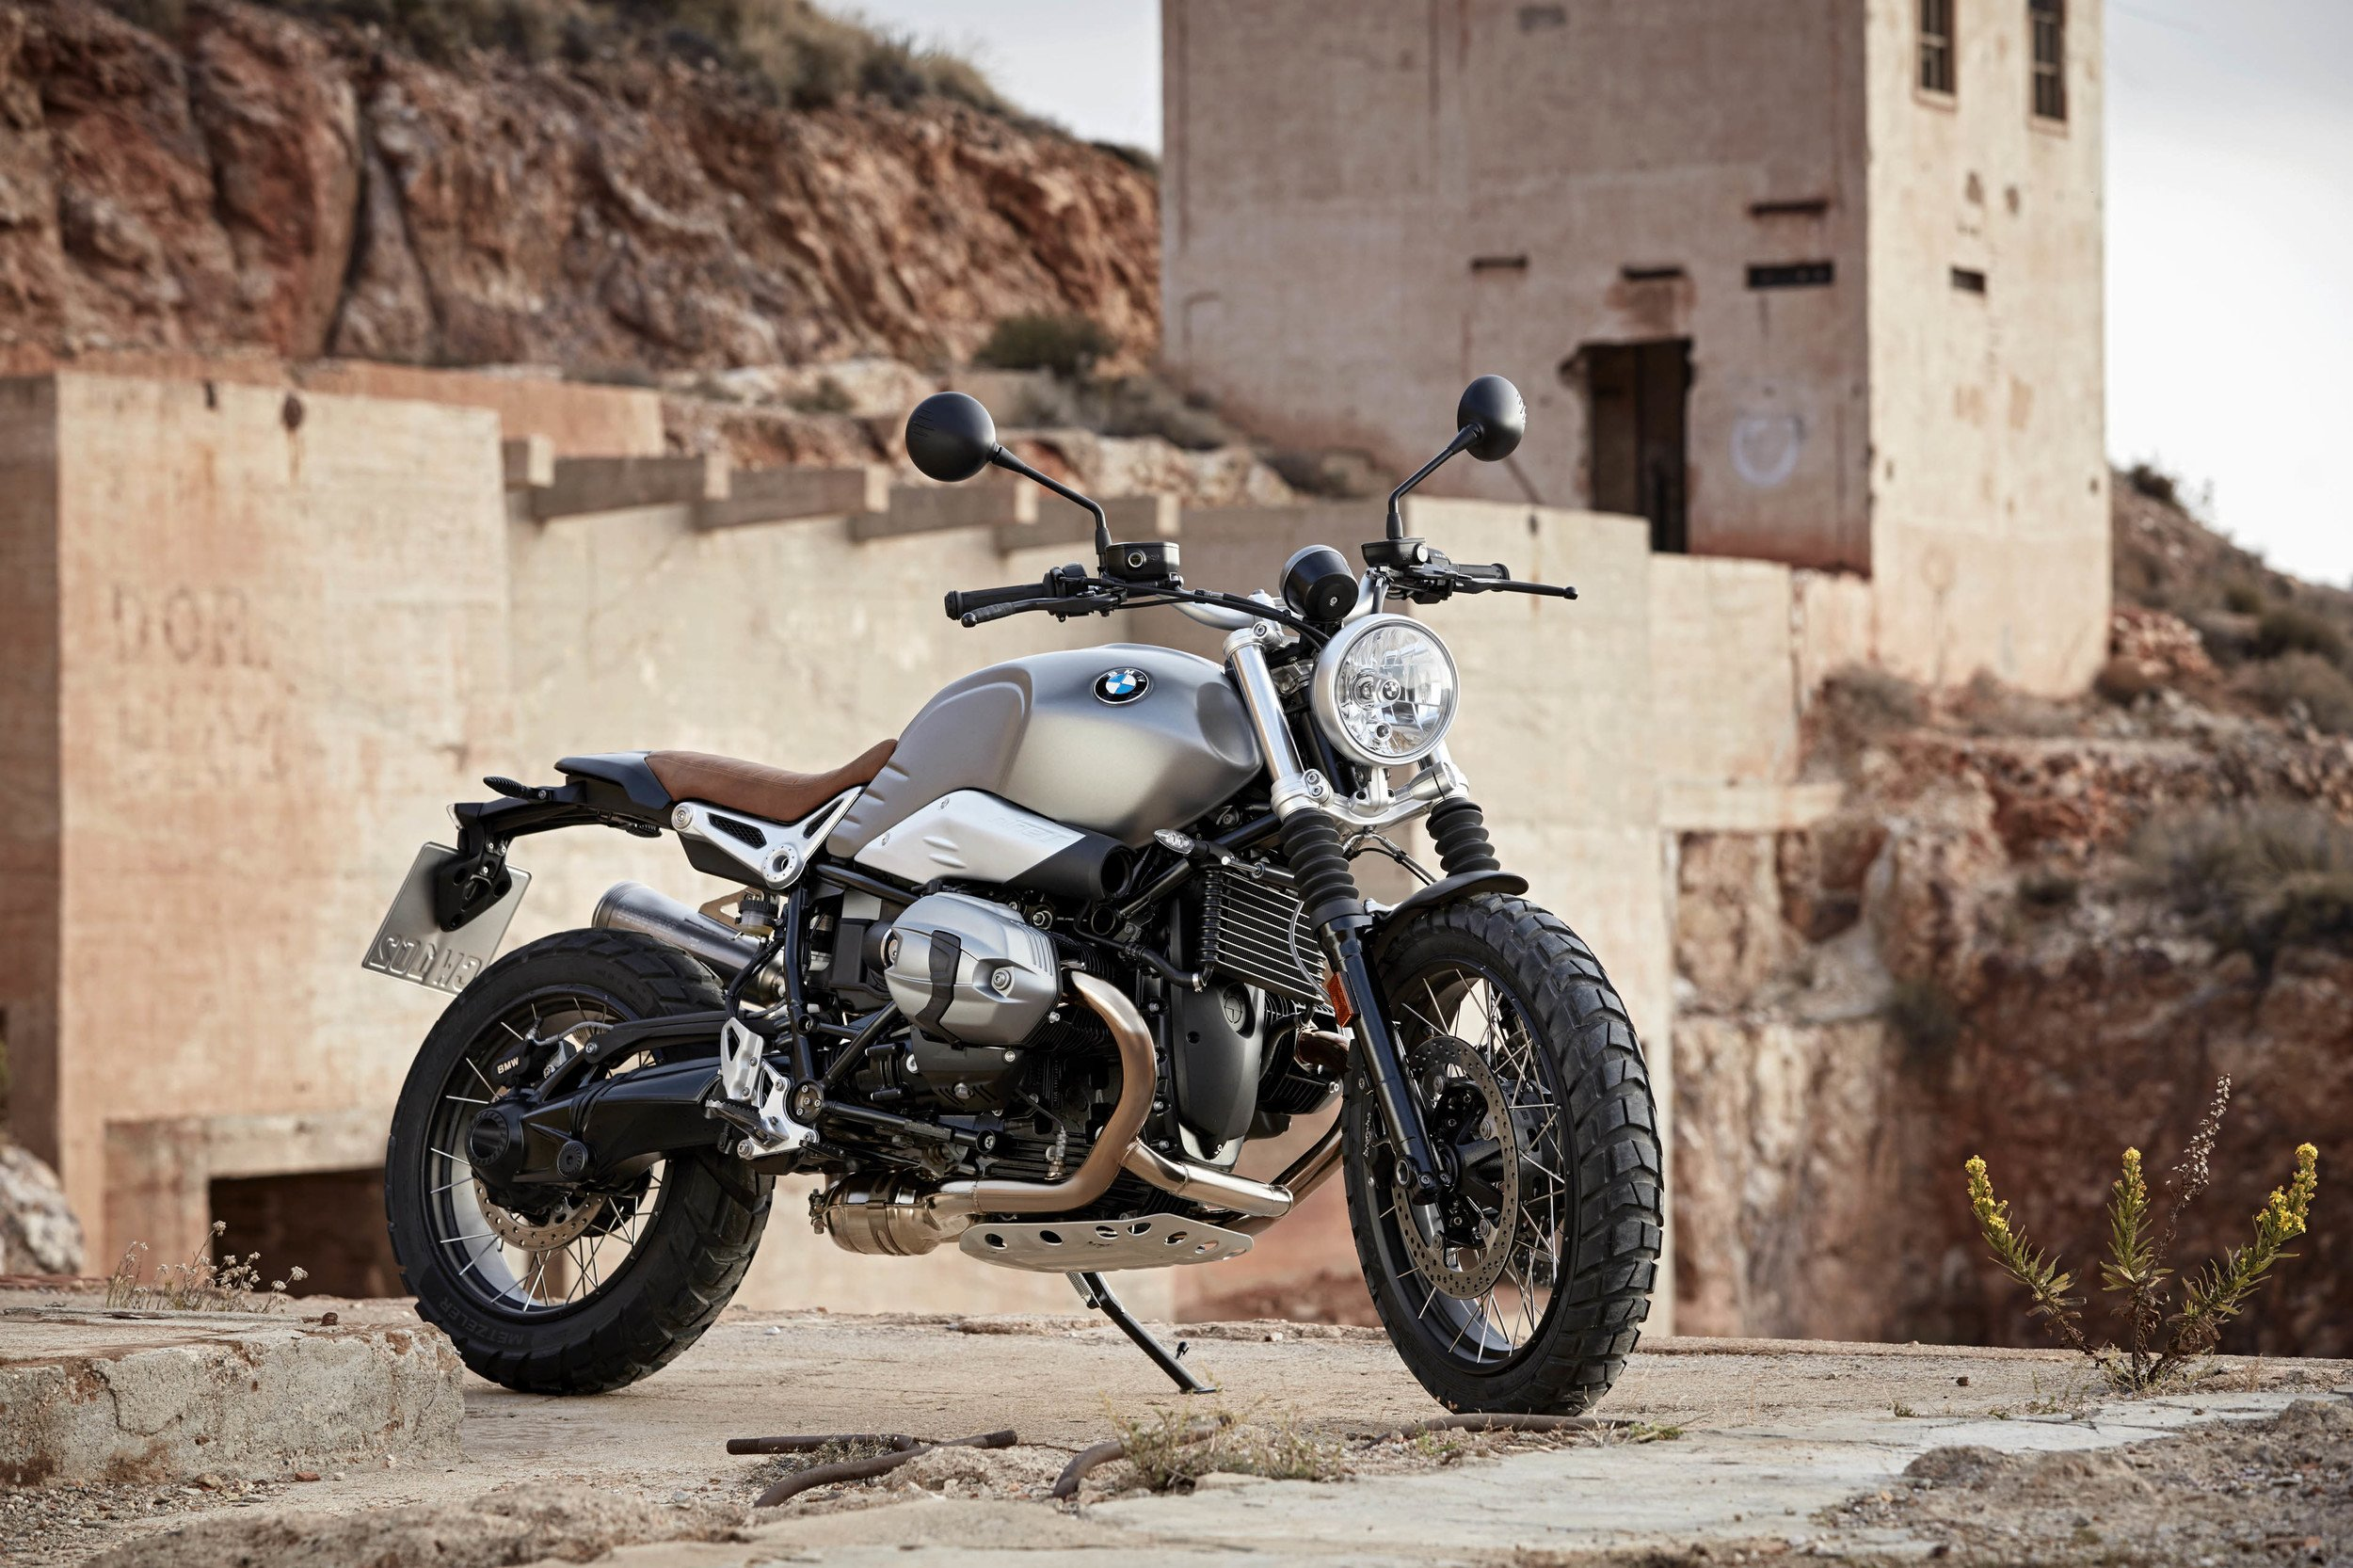 bmw reveals-r ninet scrambler 2016 motorcycles wallpaper | 2500x1666